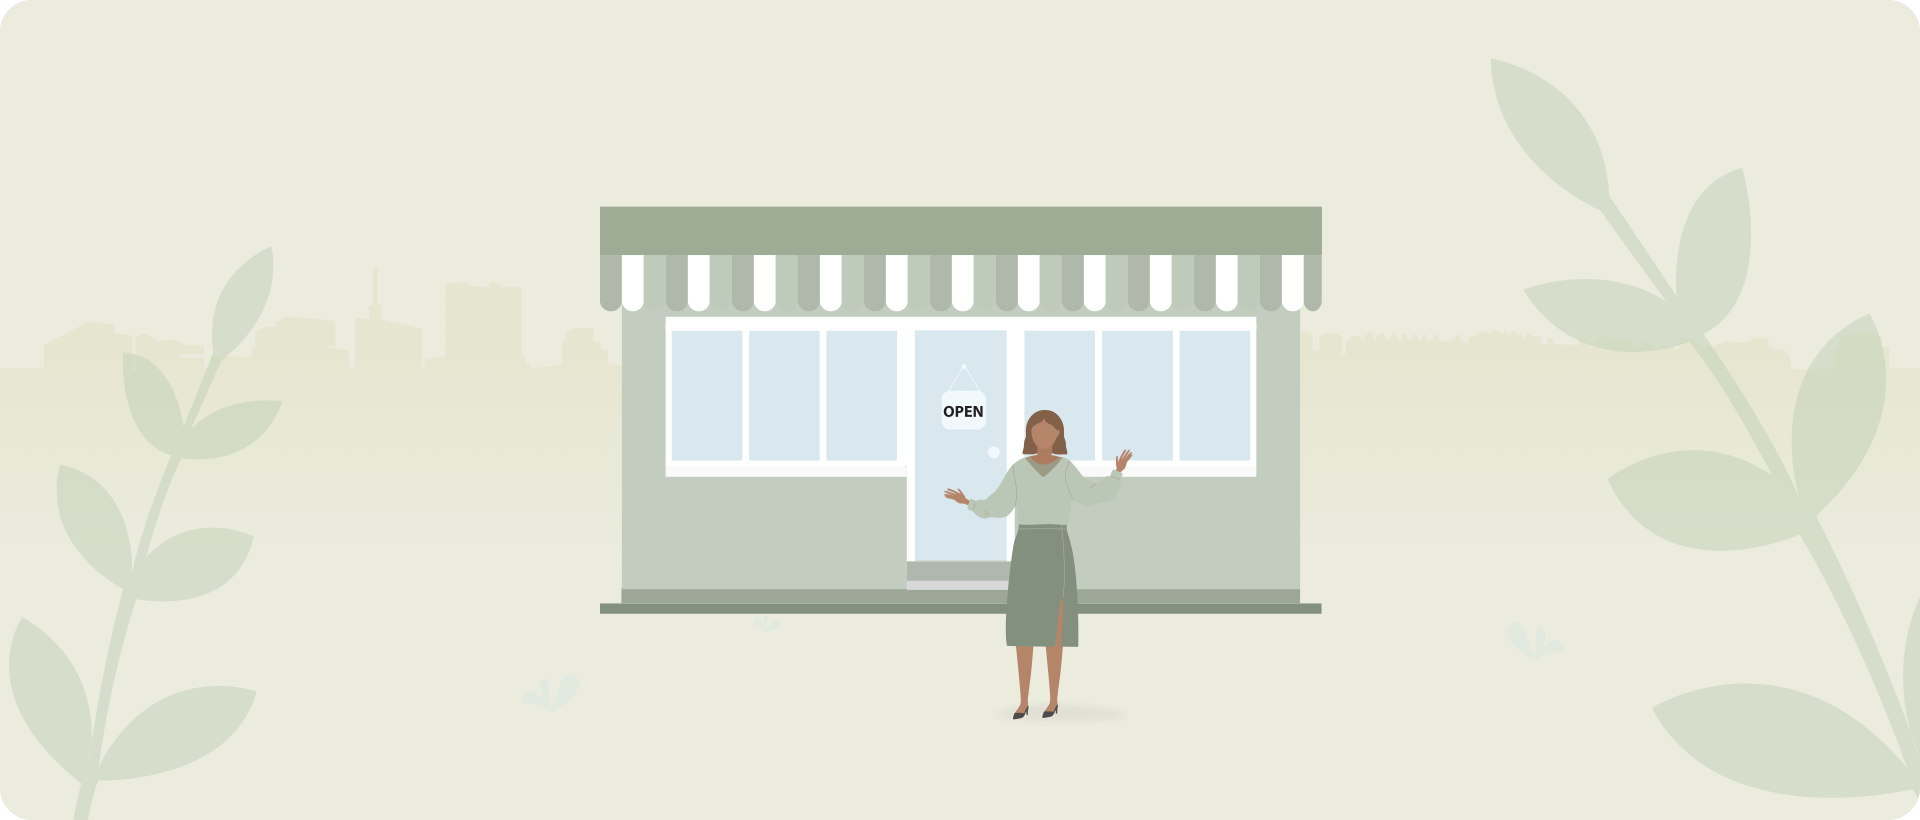 Essential Soft Skills for Retail Employees & How to Assess Them